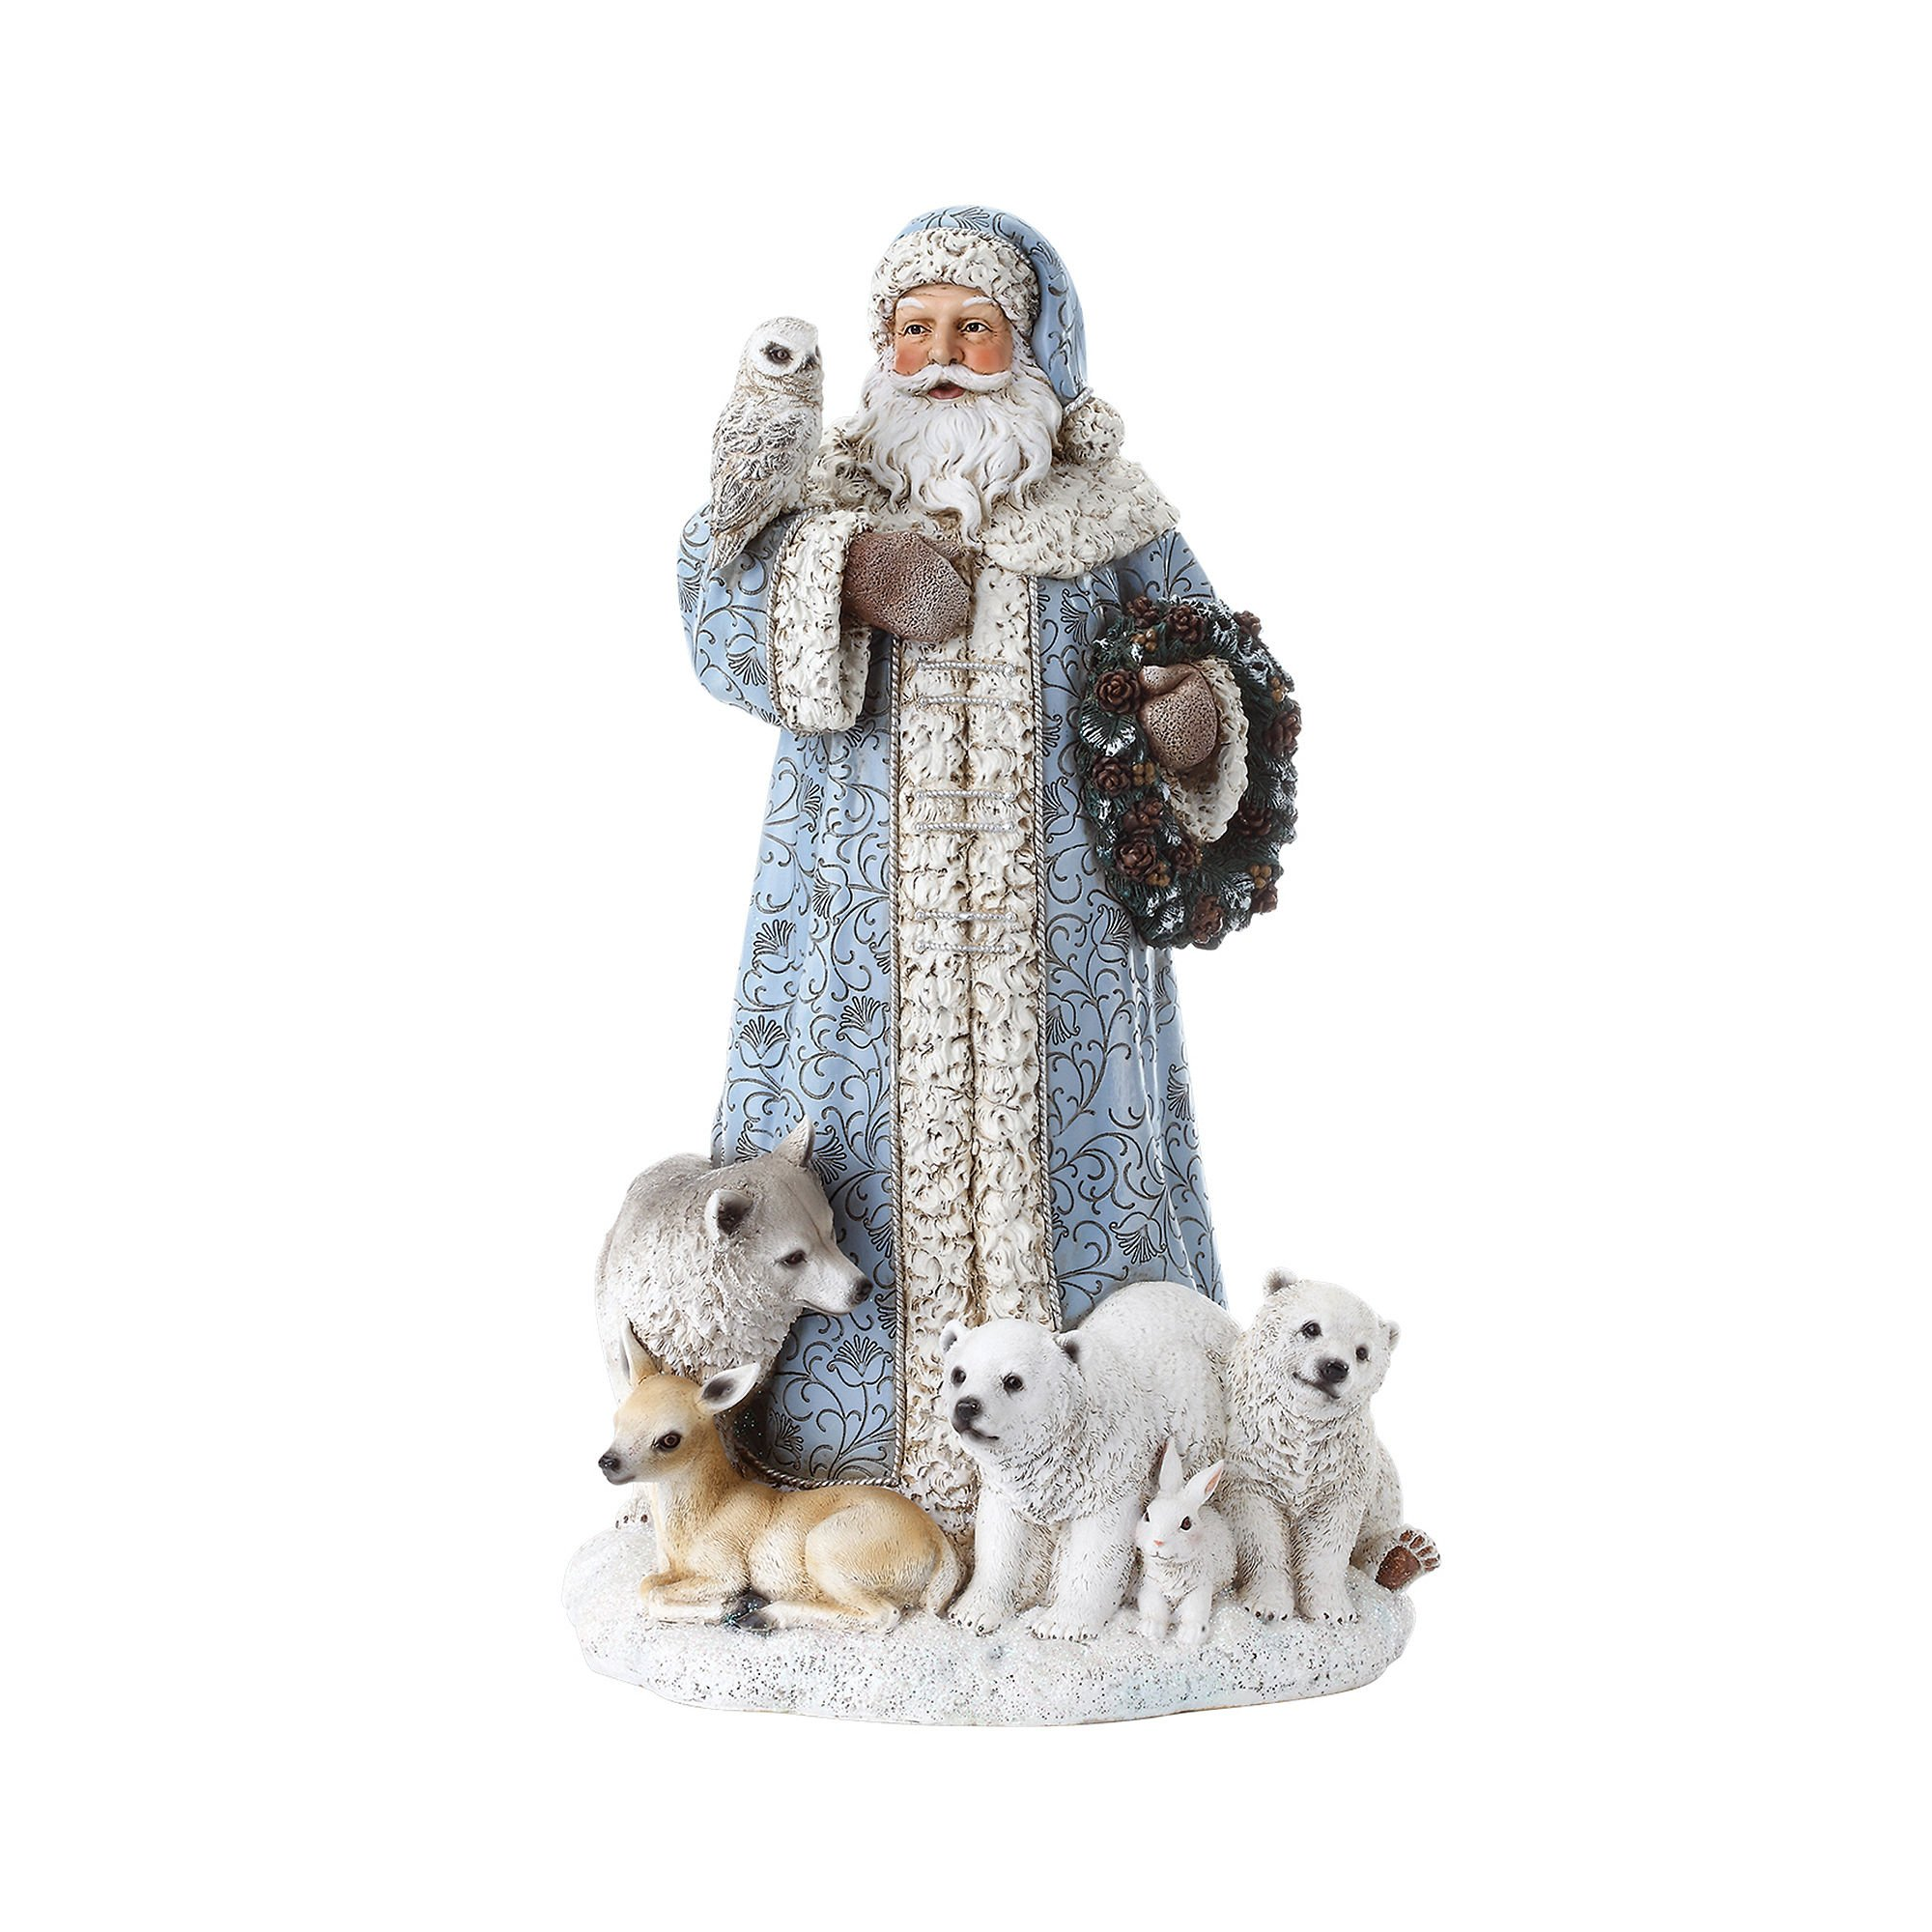 Powder Blue Santa Claus 16 inch Resin Stone Christmas Statue Figurine Decoration by Roman